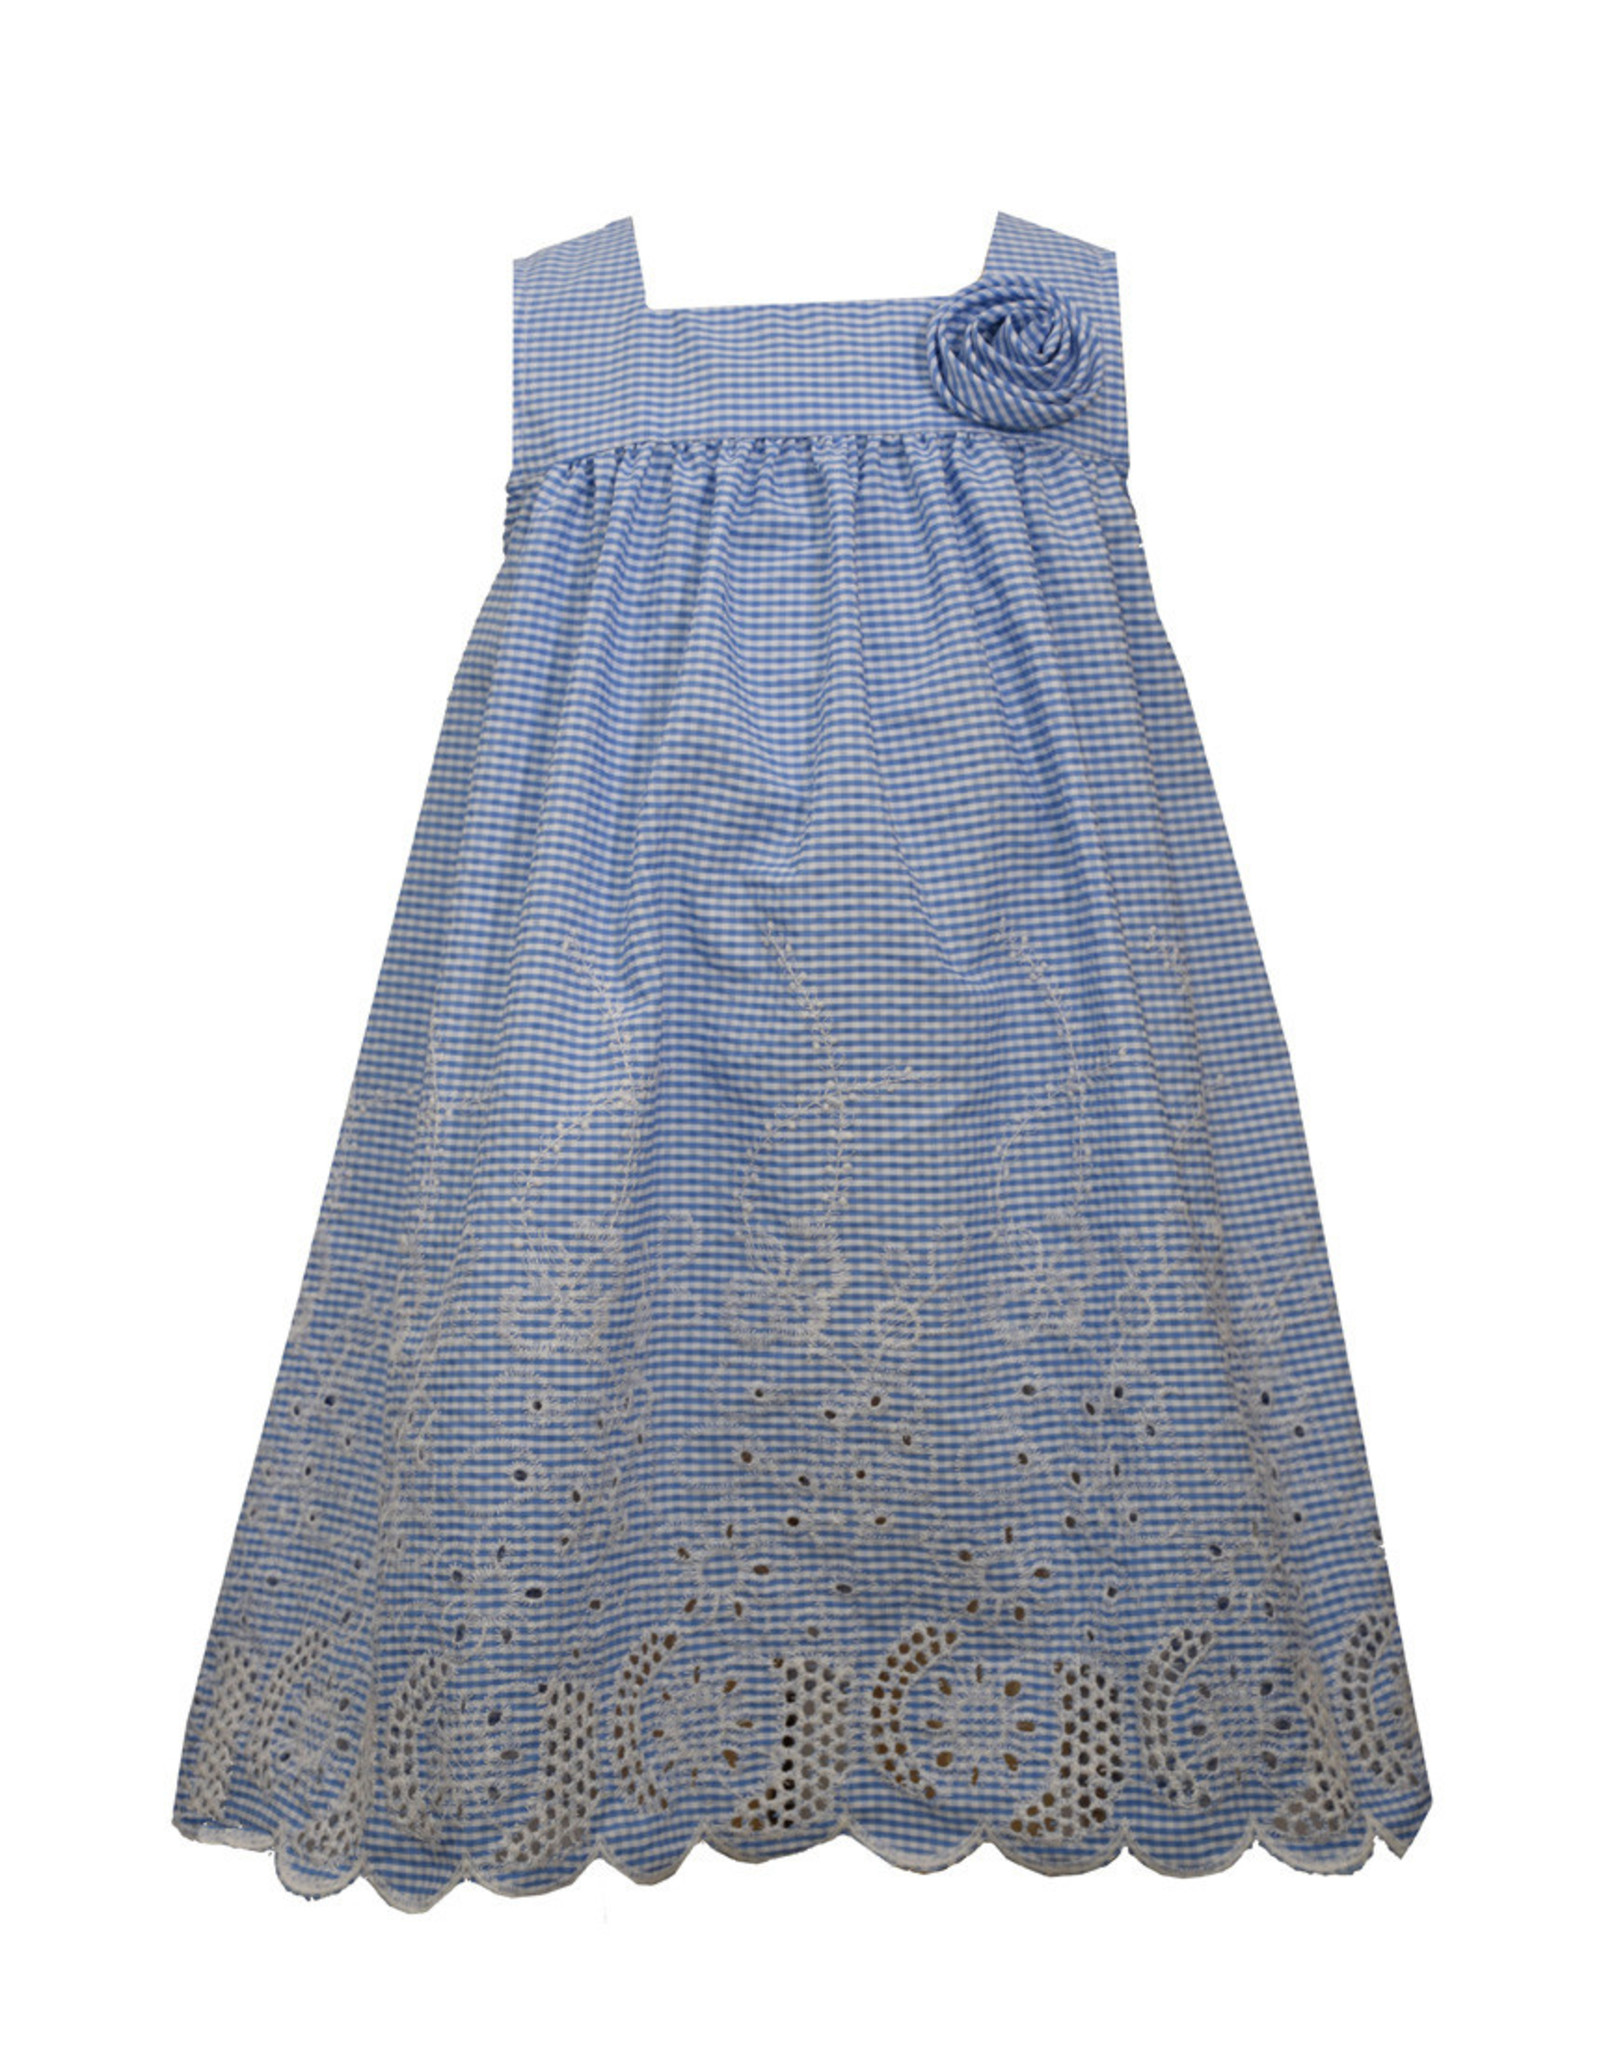 Bonnie  Jean Bonnie Jean- Embroidered Blue Check Sundress